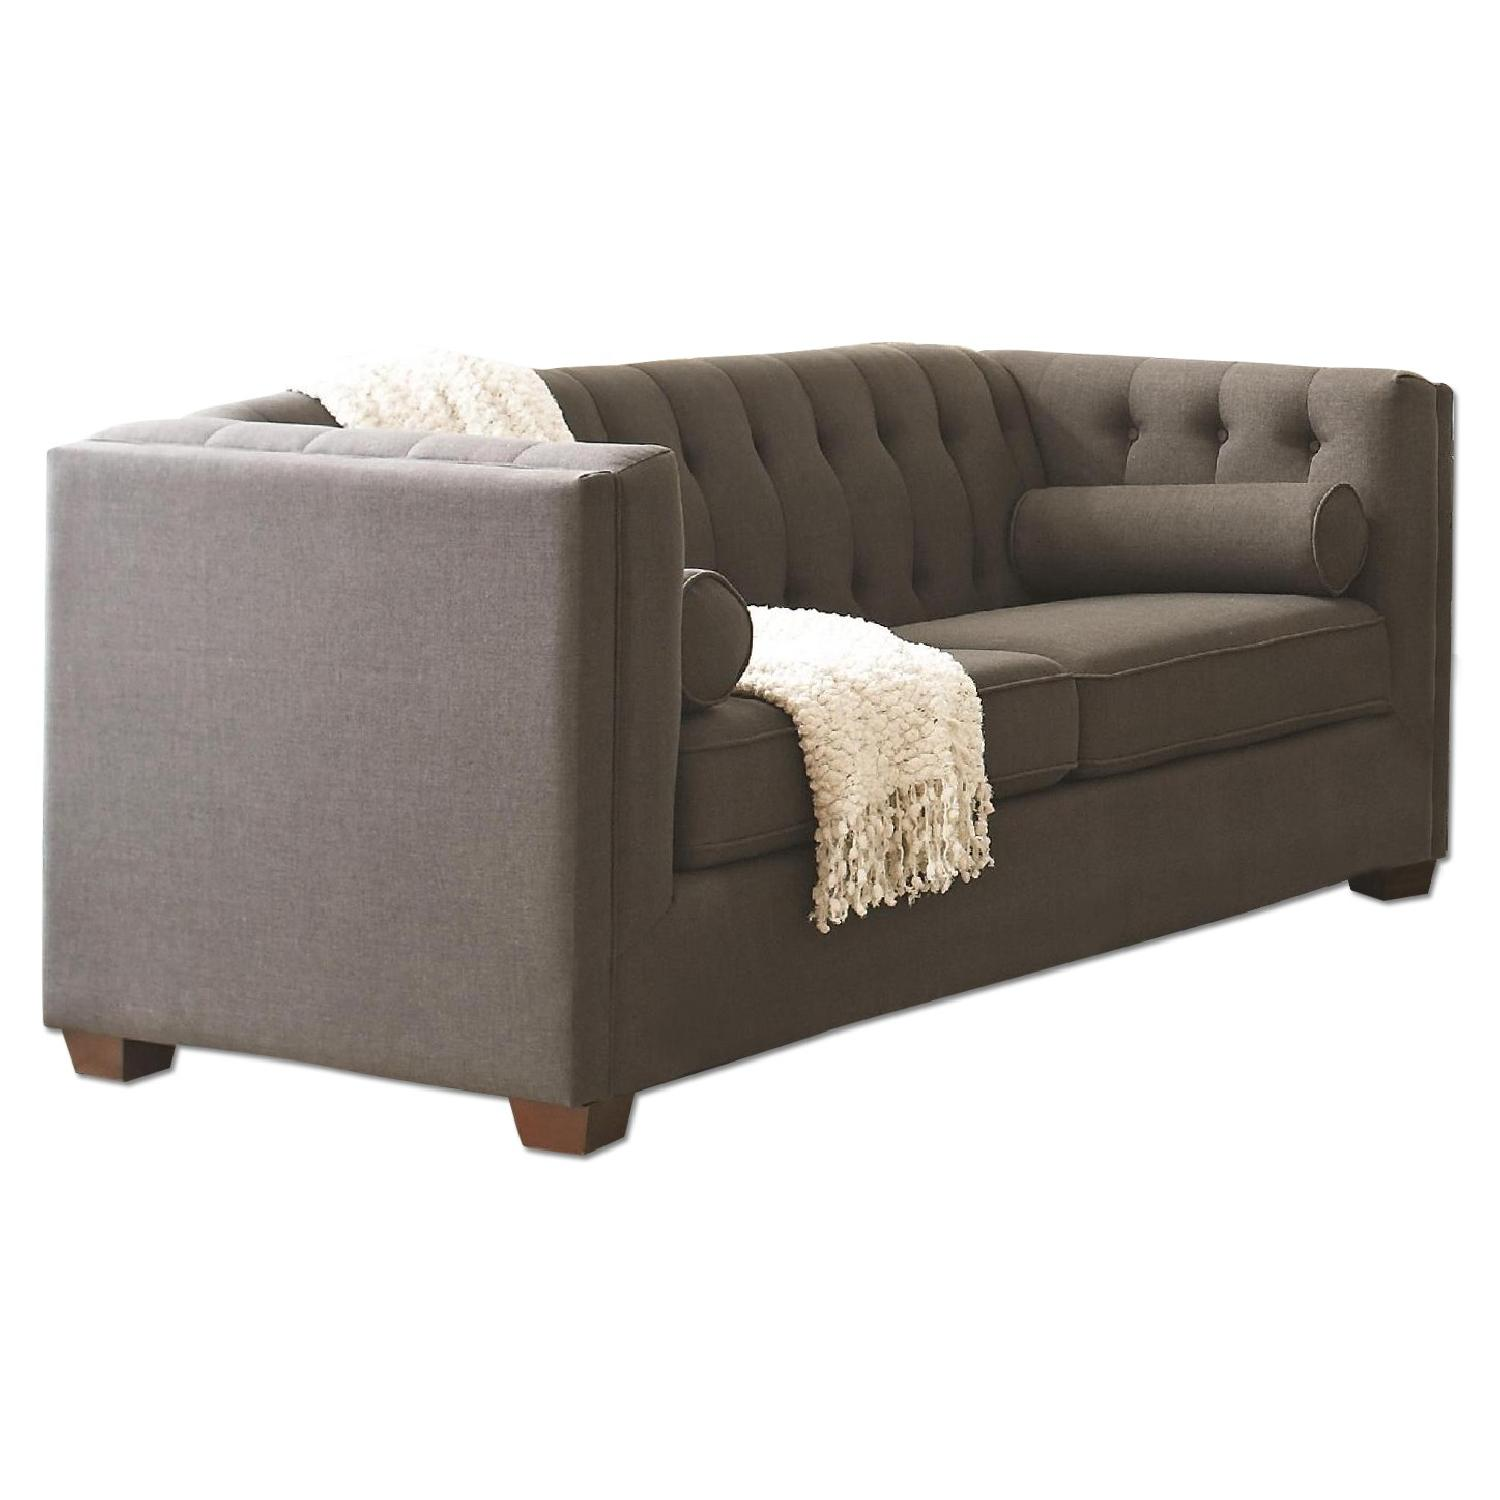 Modern Sofa w/ Tufted Back & Lumbar Pillows in Charcoal Color Fabric